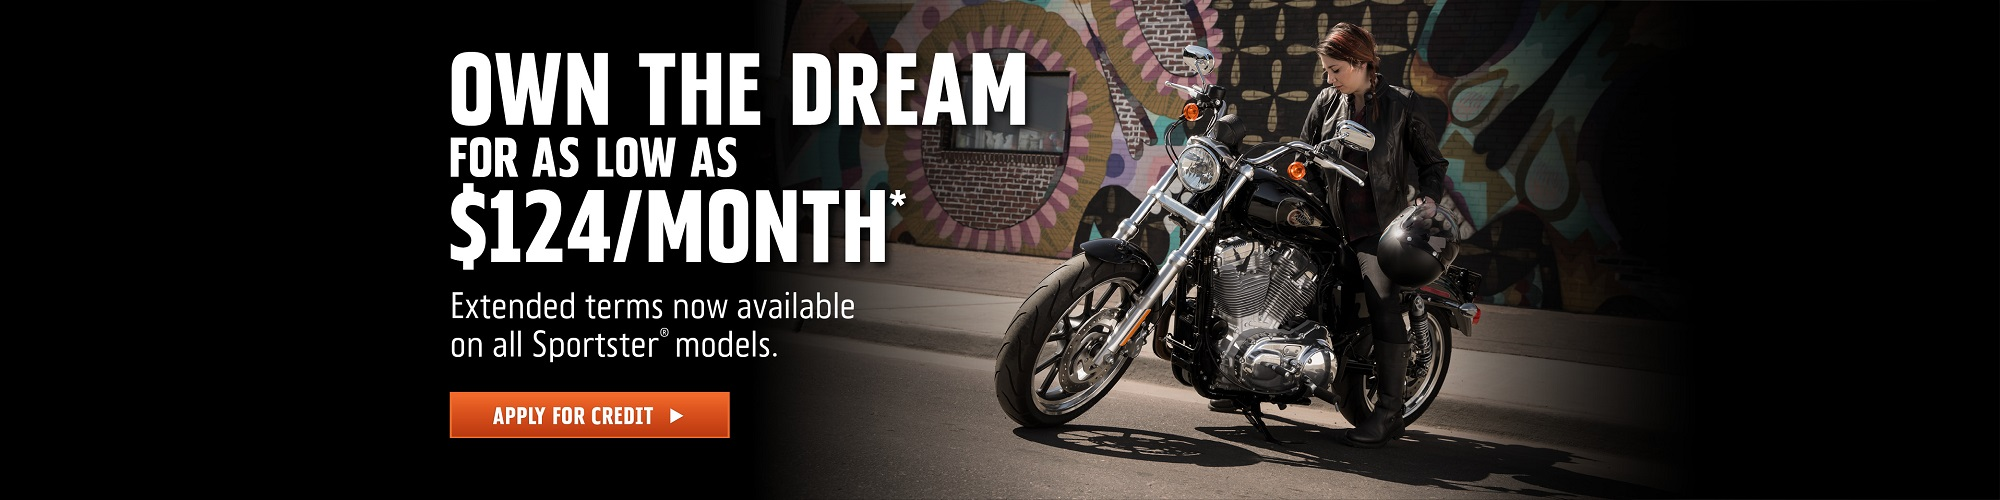 Harley-Davidson 84-Month Sportster Attainability Promotion at Palm Springs Harley-Davidson